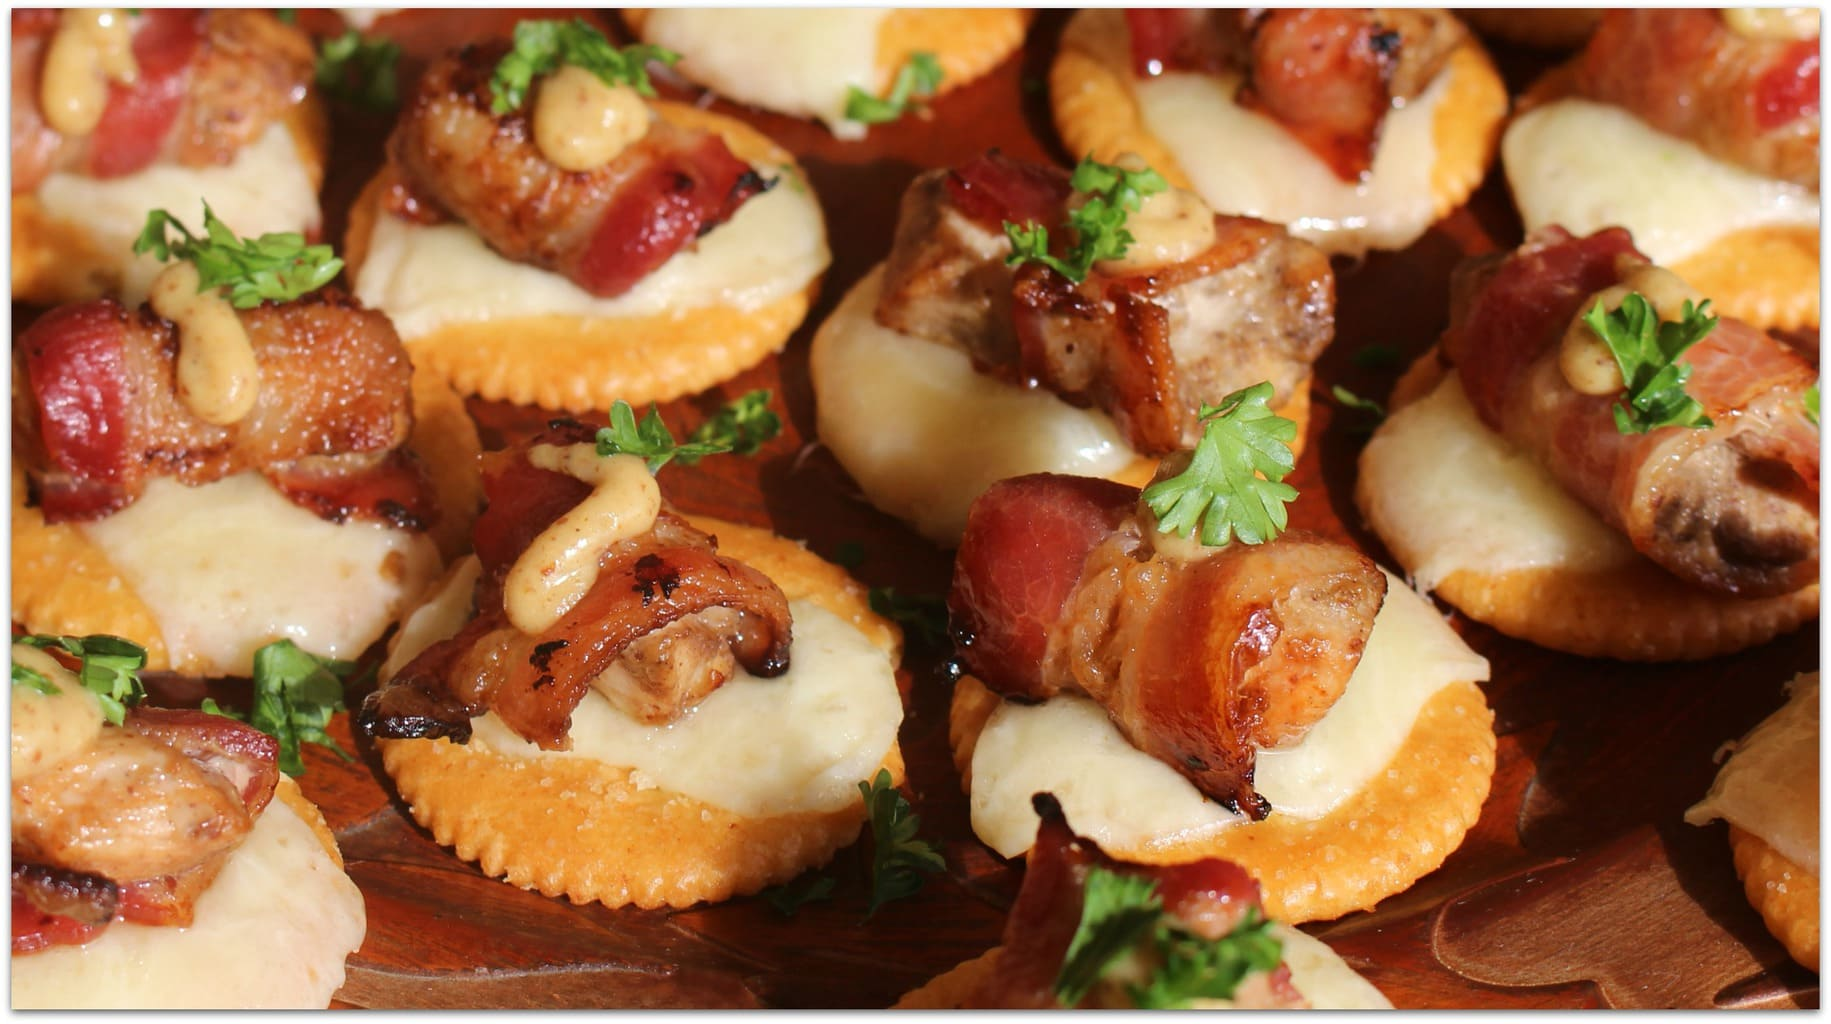 Appetizers are my favorite food! I love going to a party and trying every appetizer! In fact, we often order nothing but appetizers when we go out, and I'll even serve a few appetizers for an easy dinner. This is one of my family's favorite chicken recipes, probably because it included bacon! The next time you have to bring food to a party, head the the kitchen and make these delicious Bacon-Wrapped Chicken bites on Ritz Crackers.